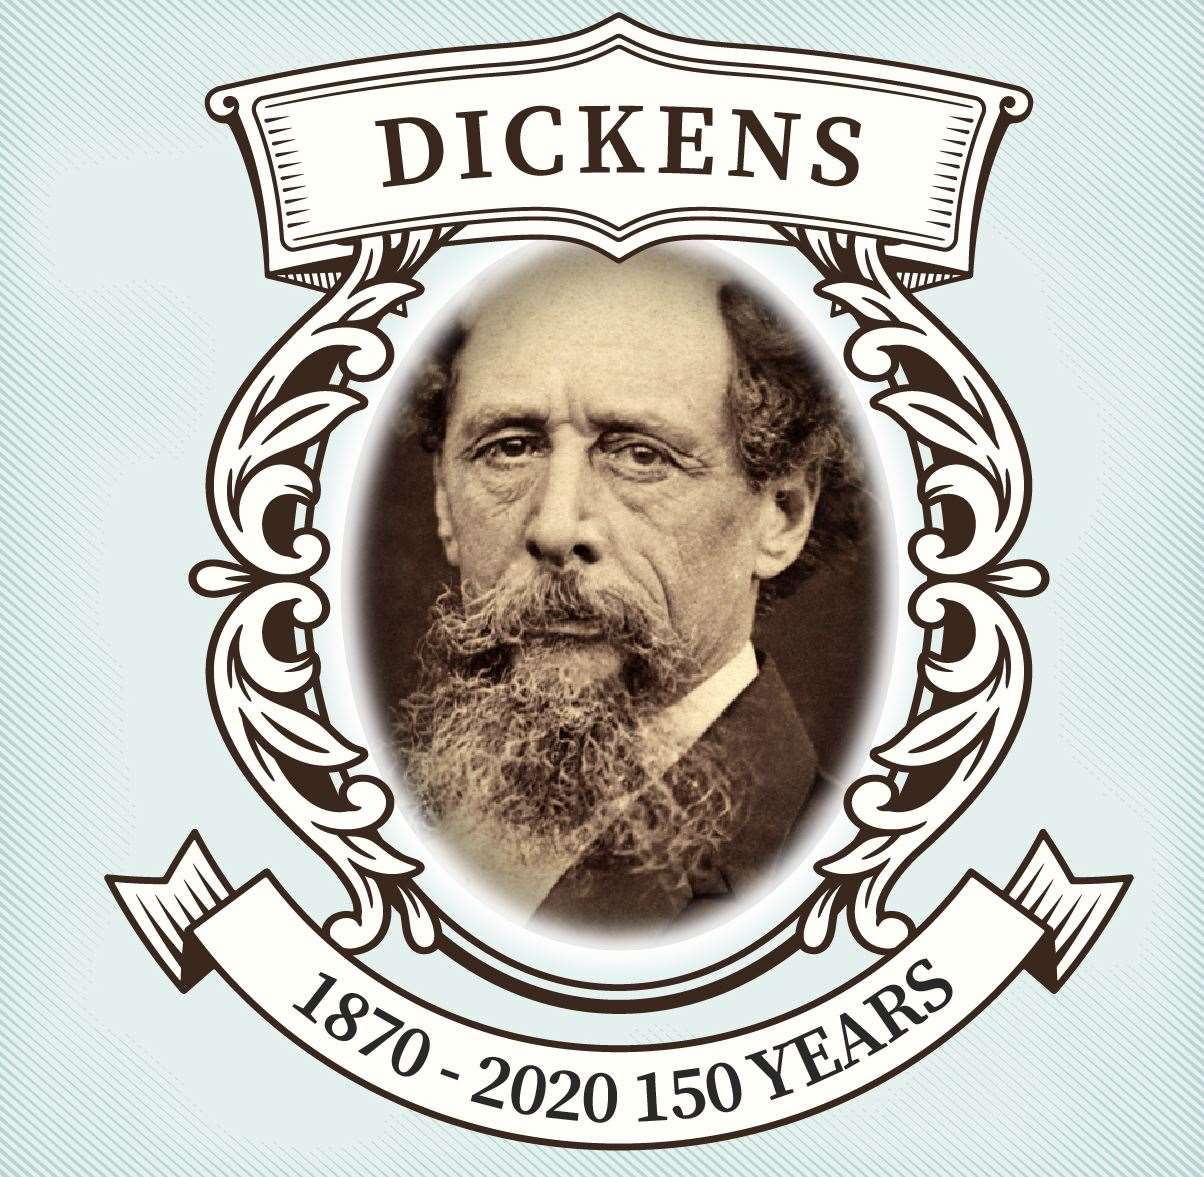 This year is the 150th anniversary of Charles Dickens' death